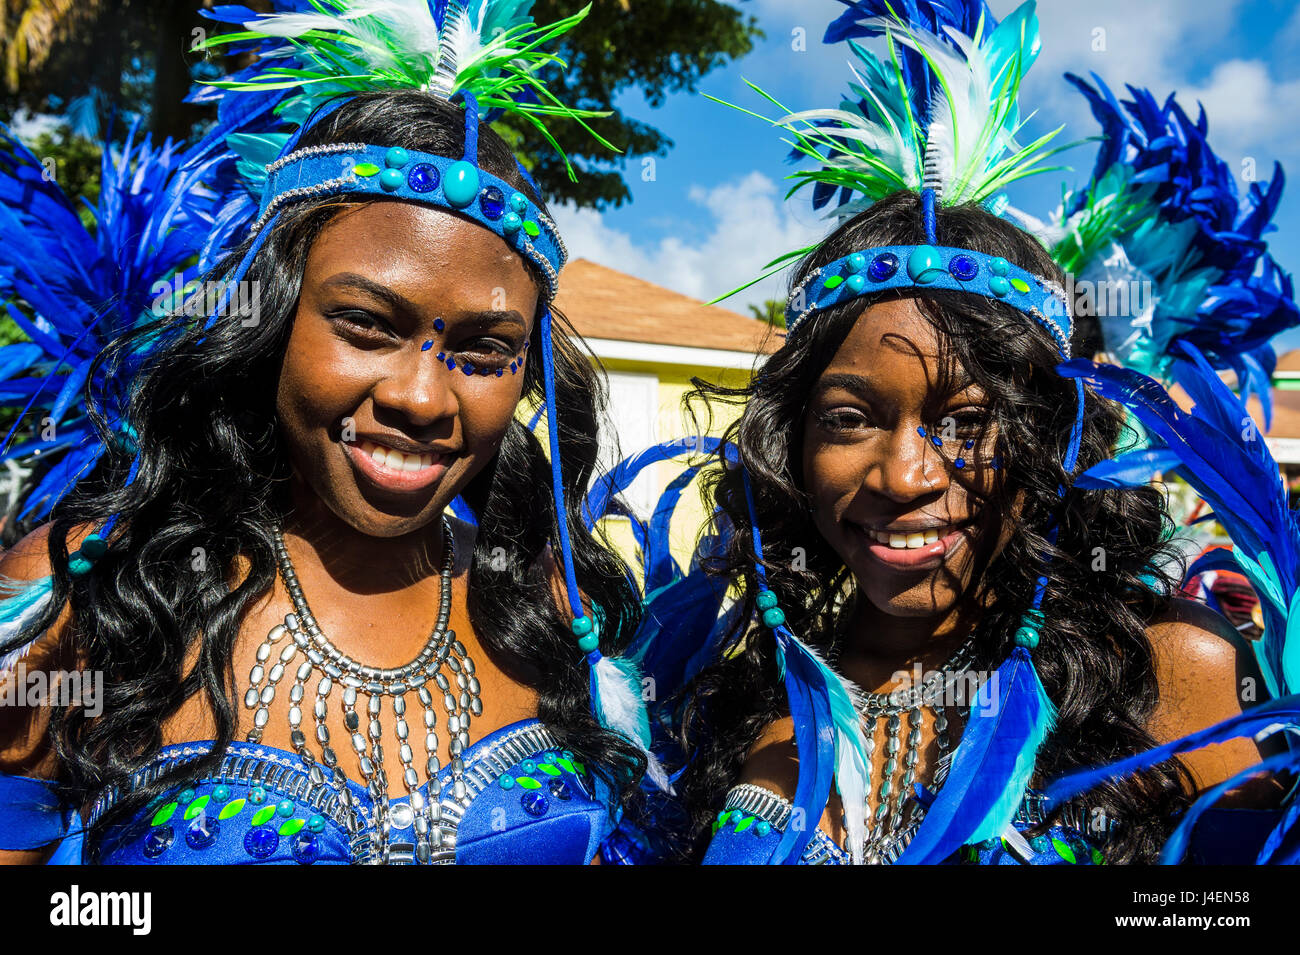 British West Indies People